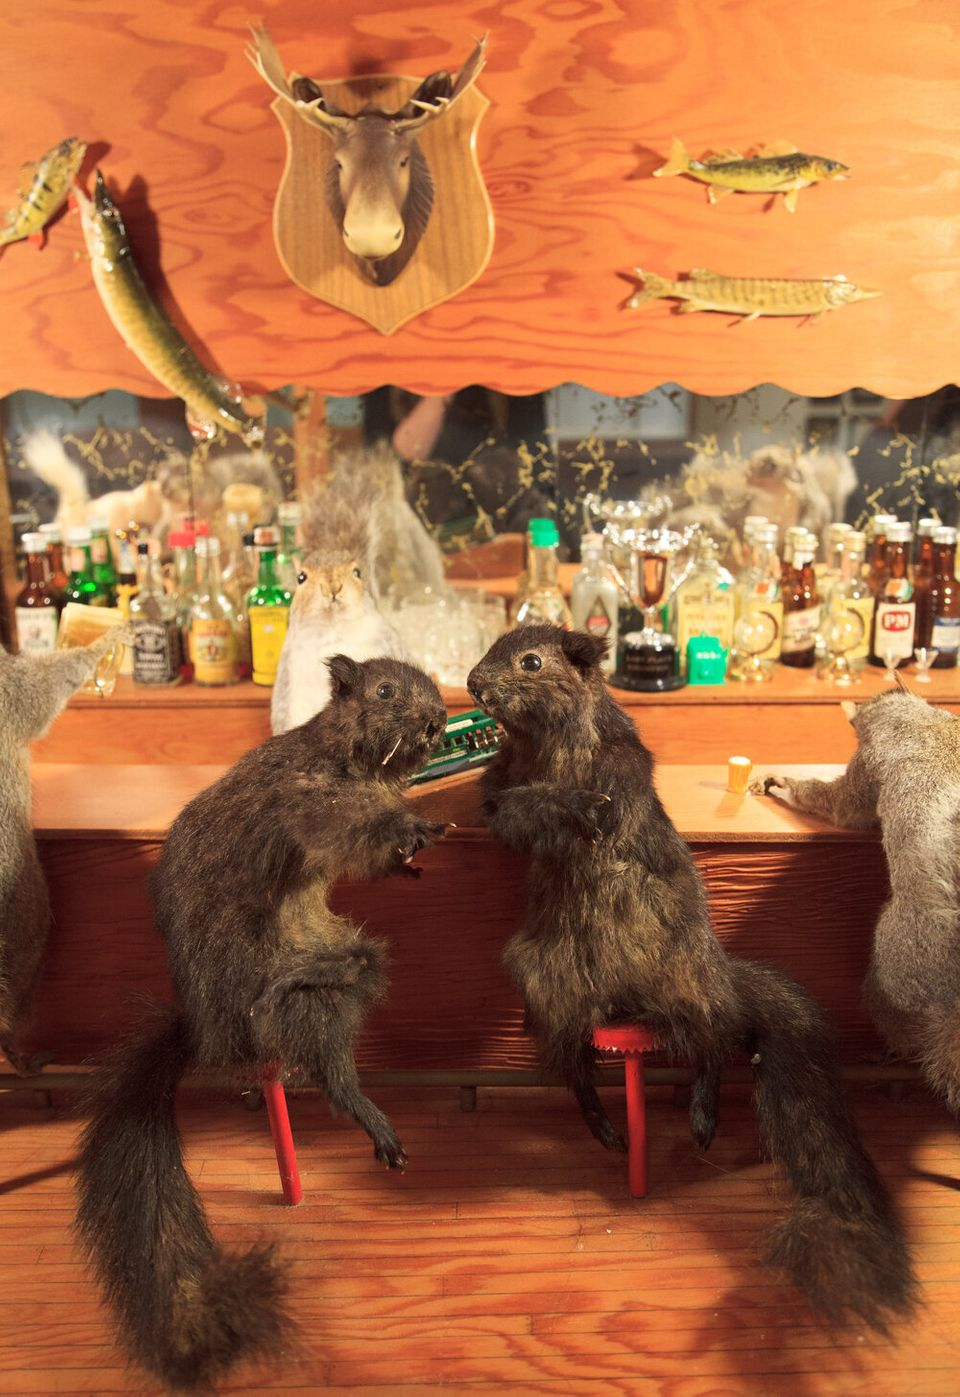 20th century anthropomorphic taxidermy tableau. Once displayed at Cress Funeral Home in Madison, Wisconsin. From the collecti